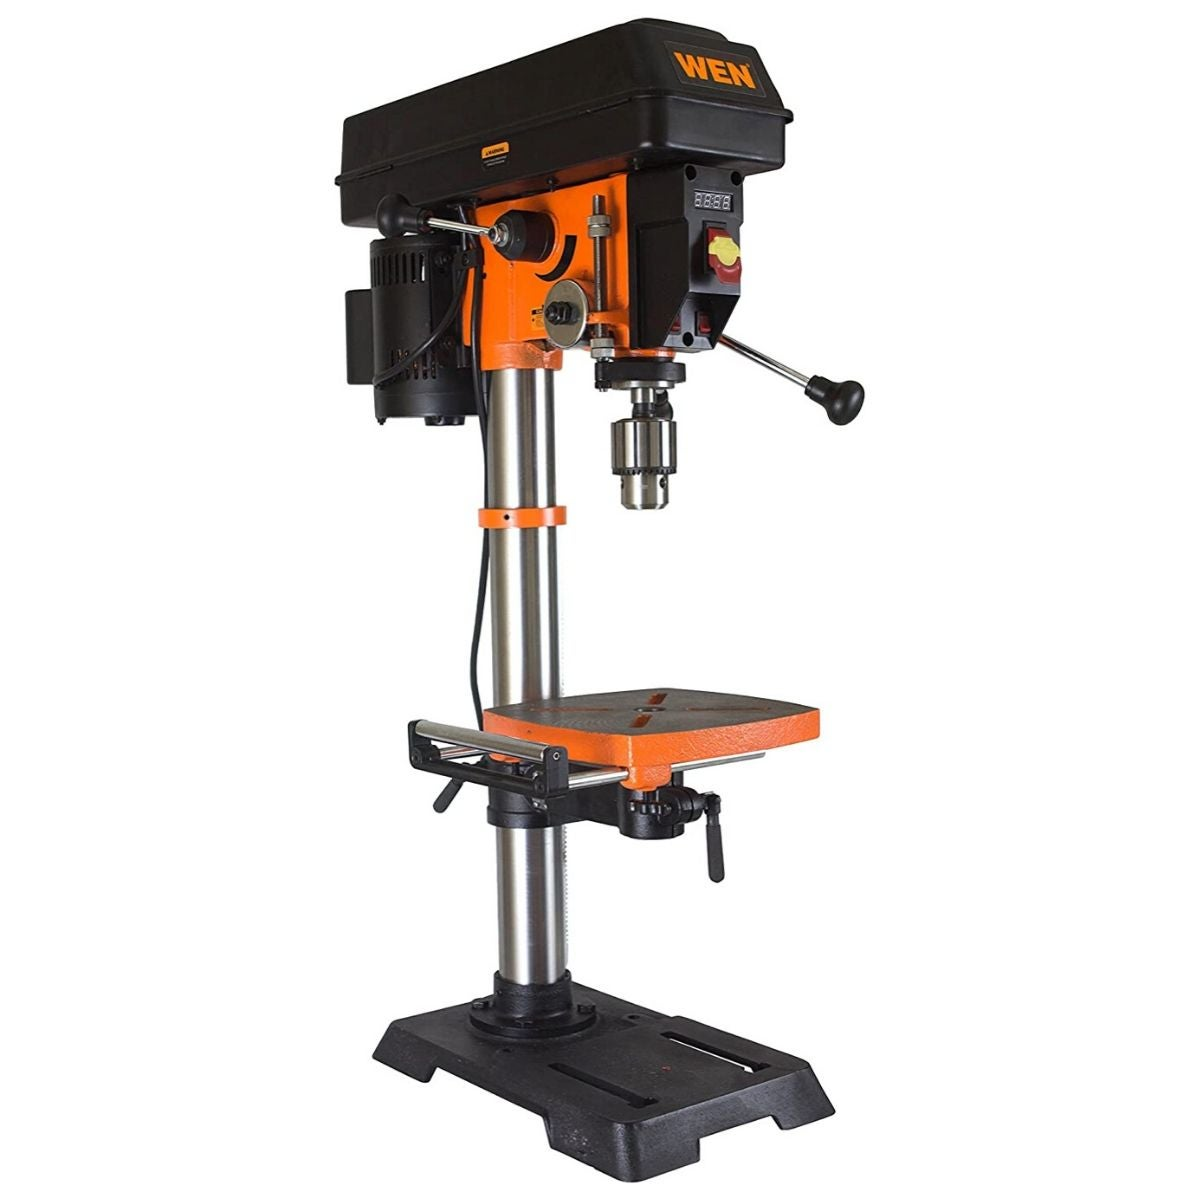 The Best Benchtop Drill Press For Your